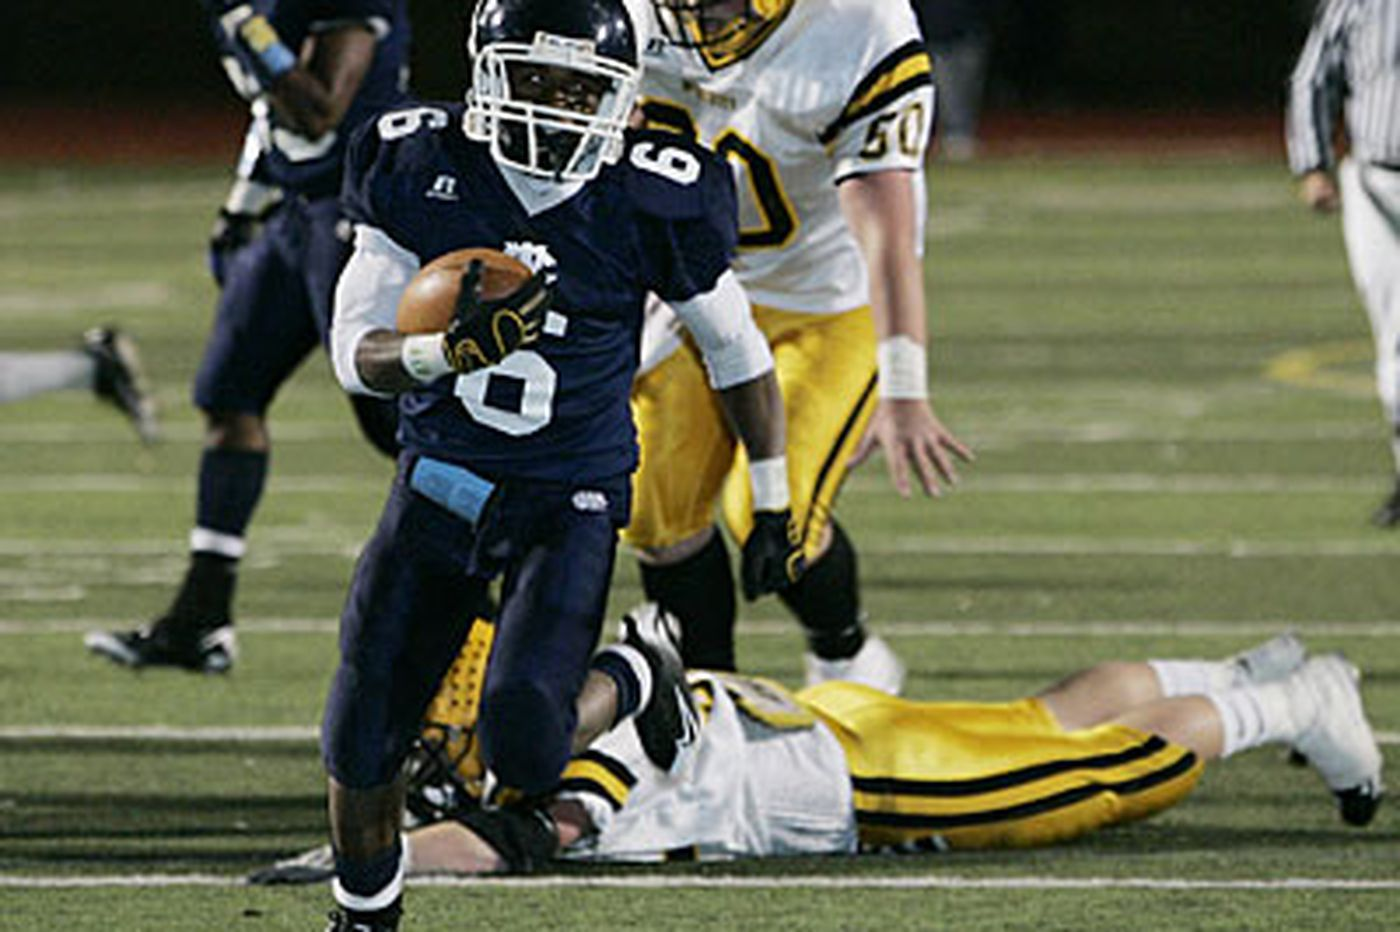 West Catholic must put the clamps on QB Smith